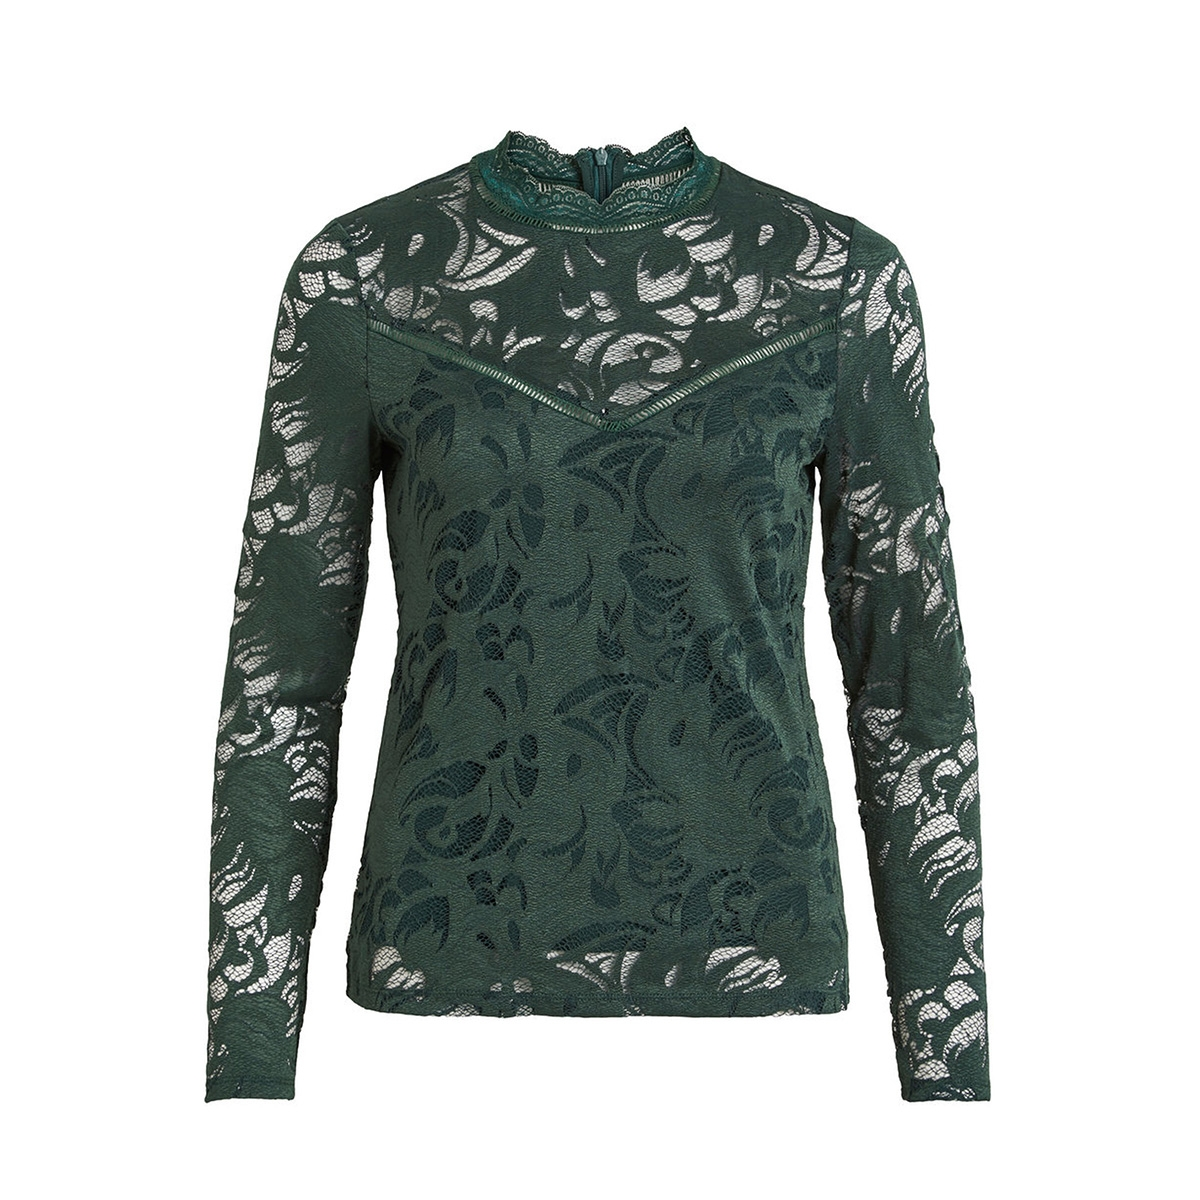 vistasia l/s lace top-noos 14041864 vila t-shirt pine grove